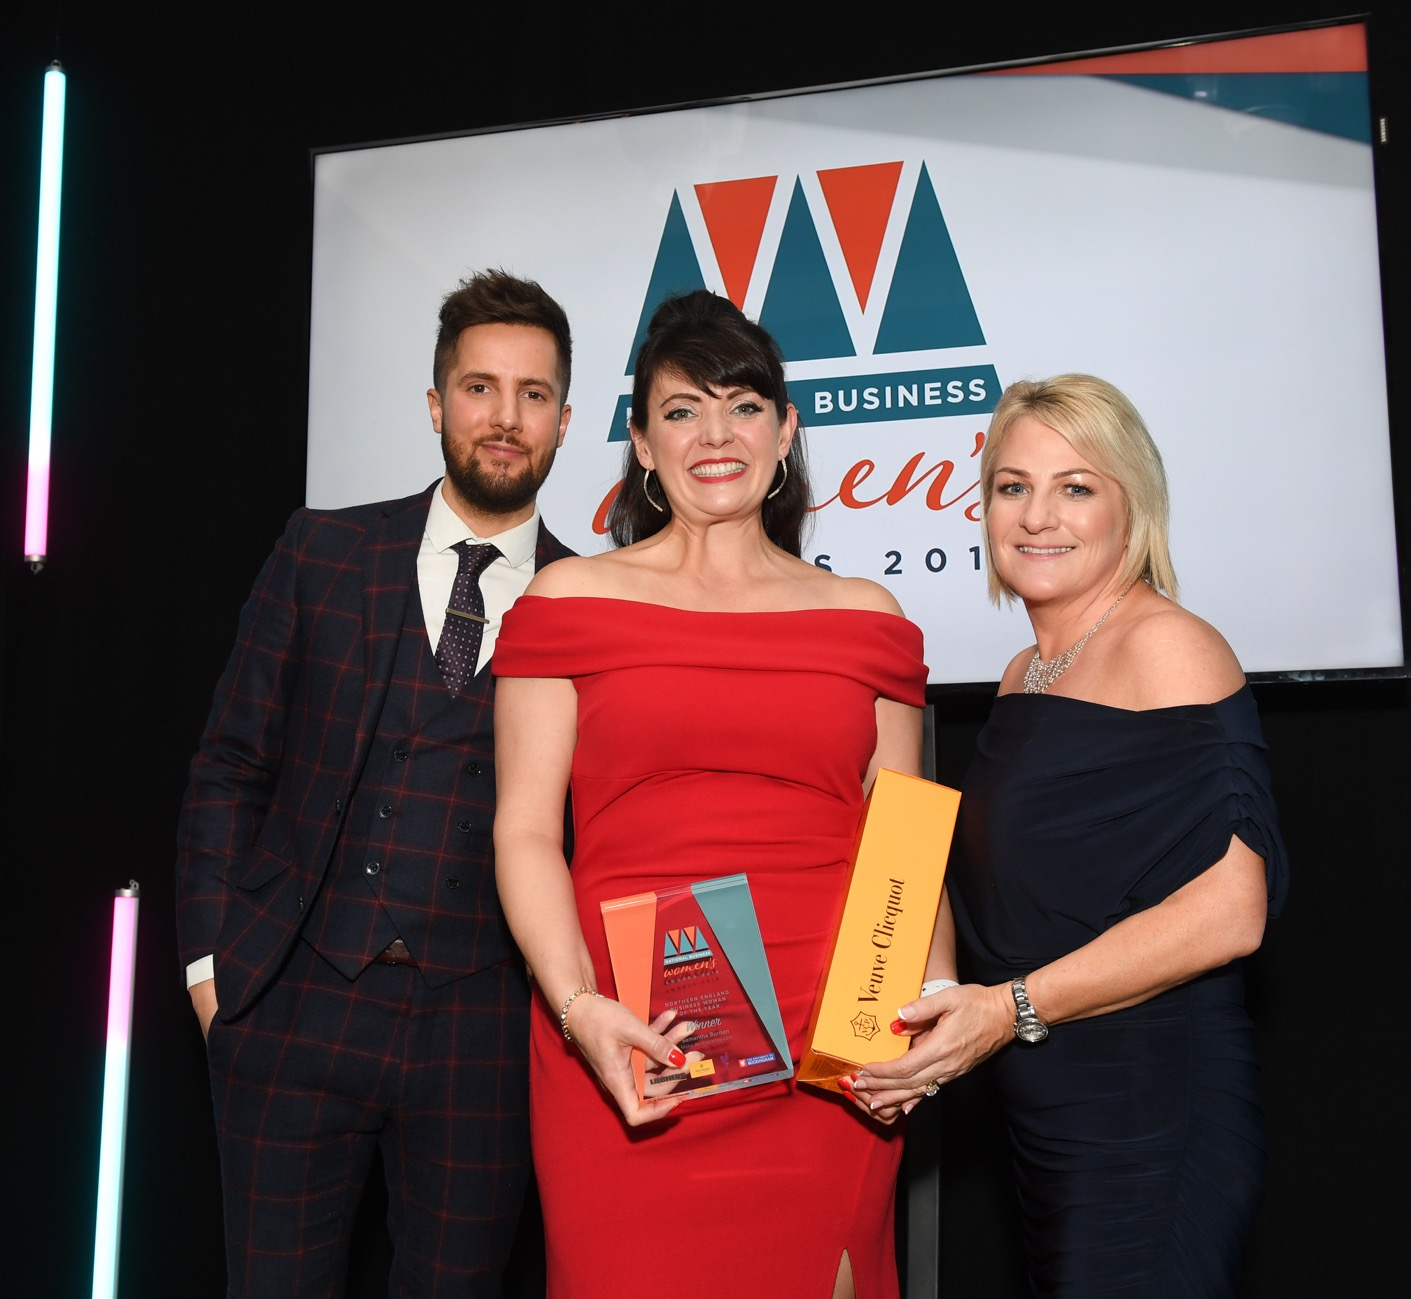 Sam Burlton of Make An Entrance - Northern England Business Woman of the Year 2019